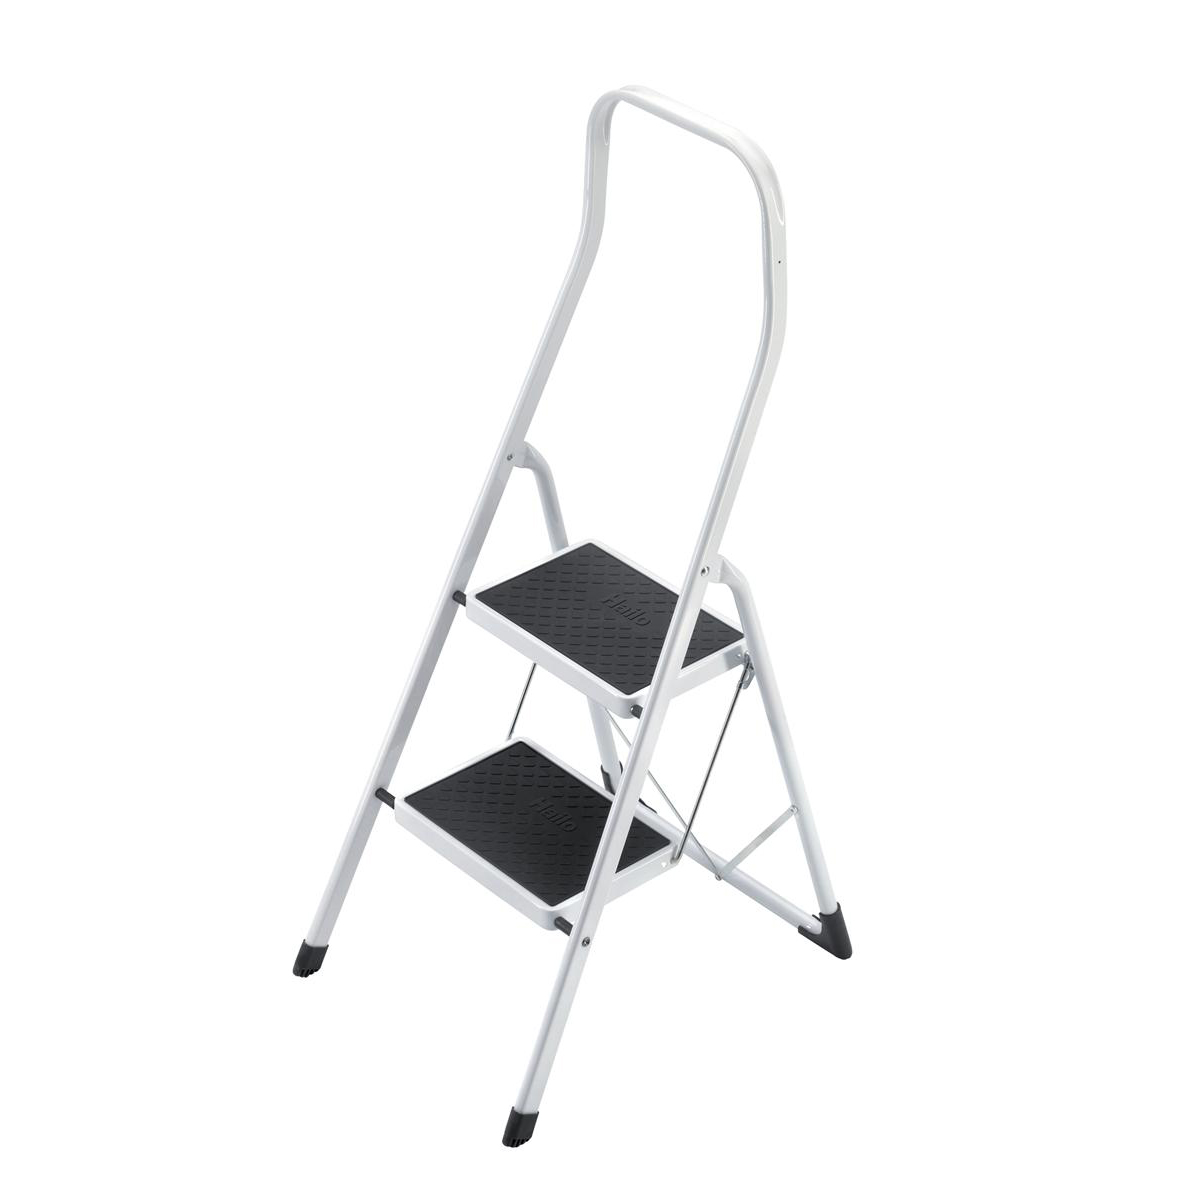 Step Stools 5 Star Facilities Safety Steps Folding Safety Rail H0.5m 2 Treads Capacity 150kg H2.26m 4.9kg